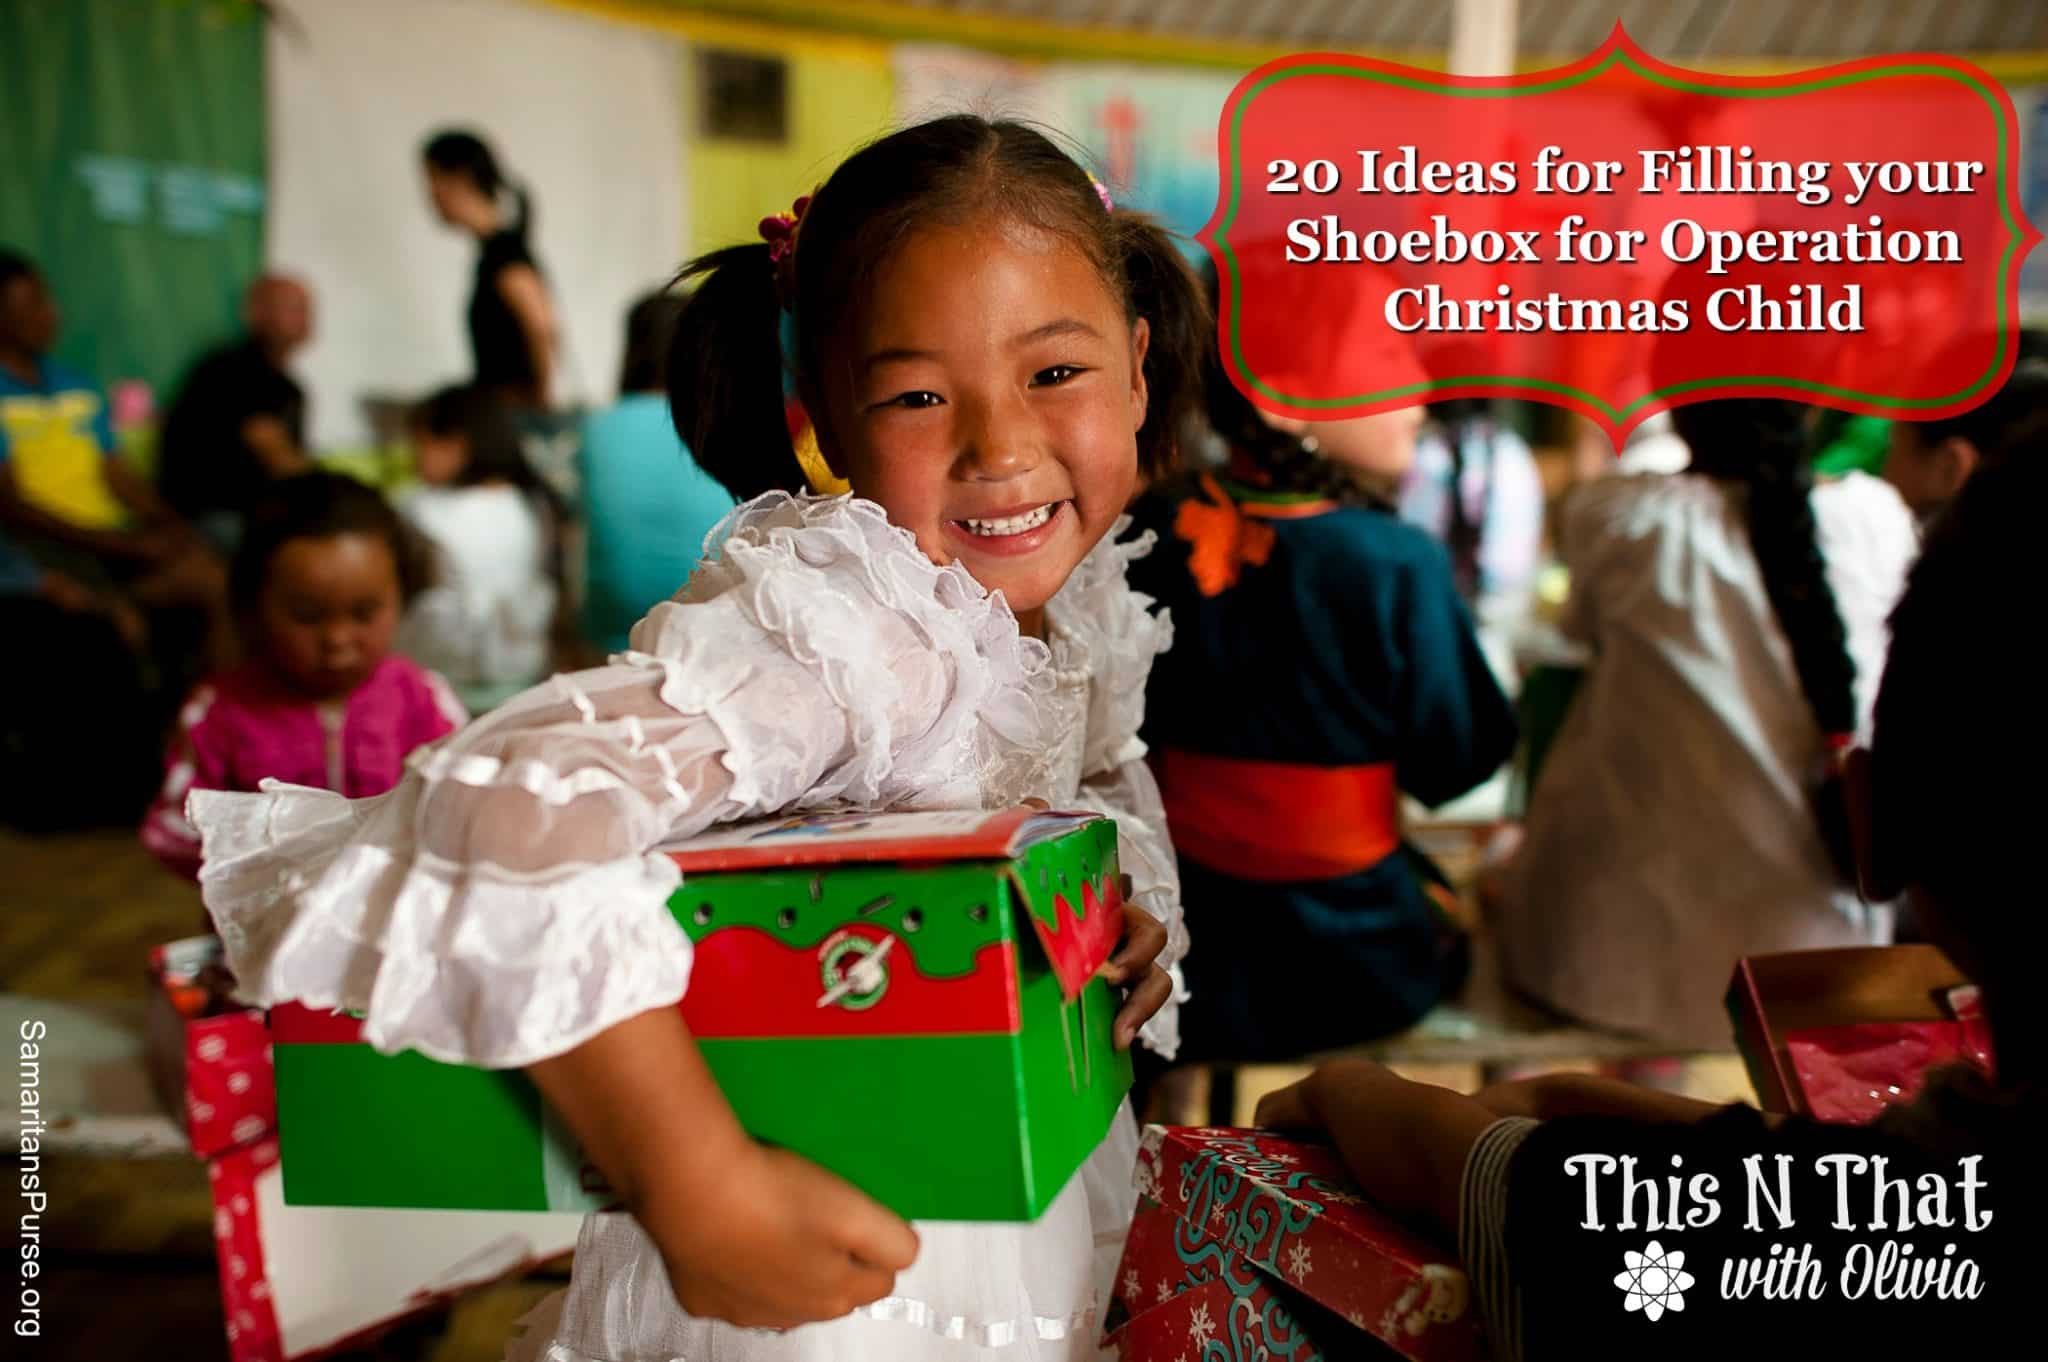 20 ideas for filling your shoebox for operation christmas child photo credit samaritans purse - Operation Christmas Child Ideas